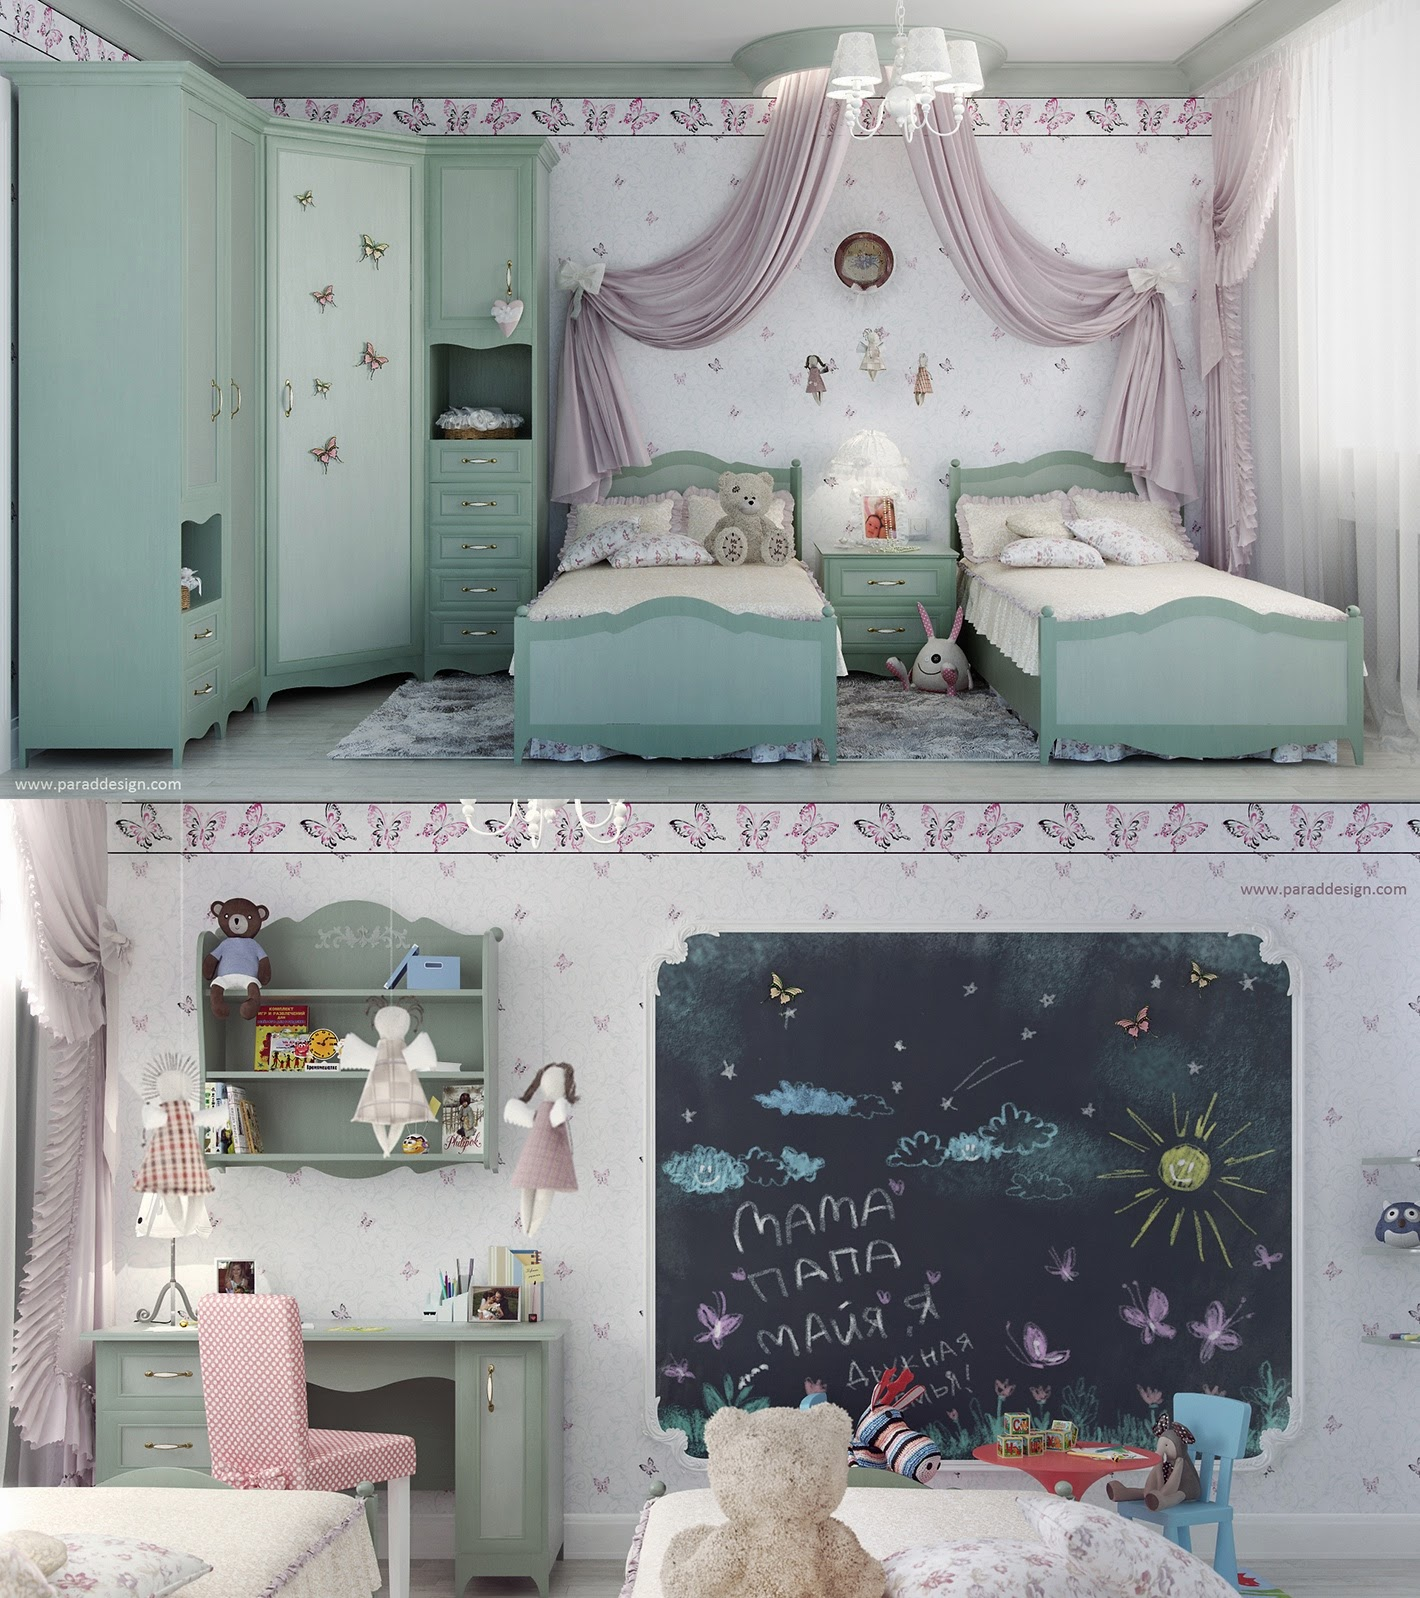 20 little girl's bedroom decorating ideas